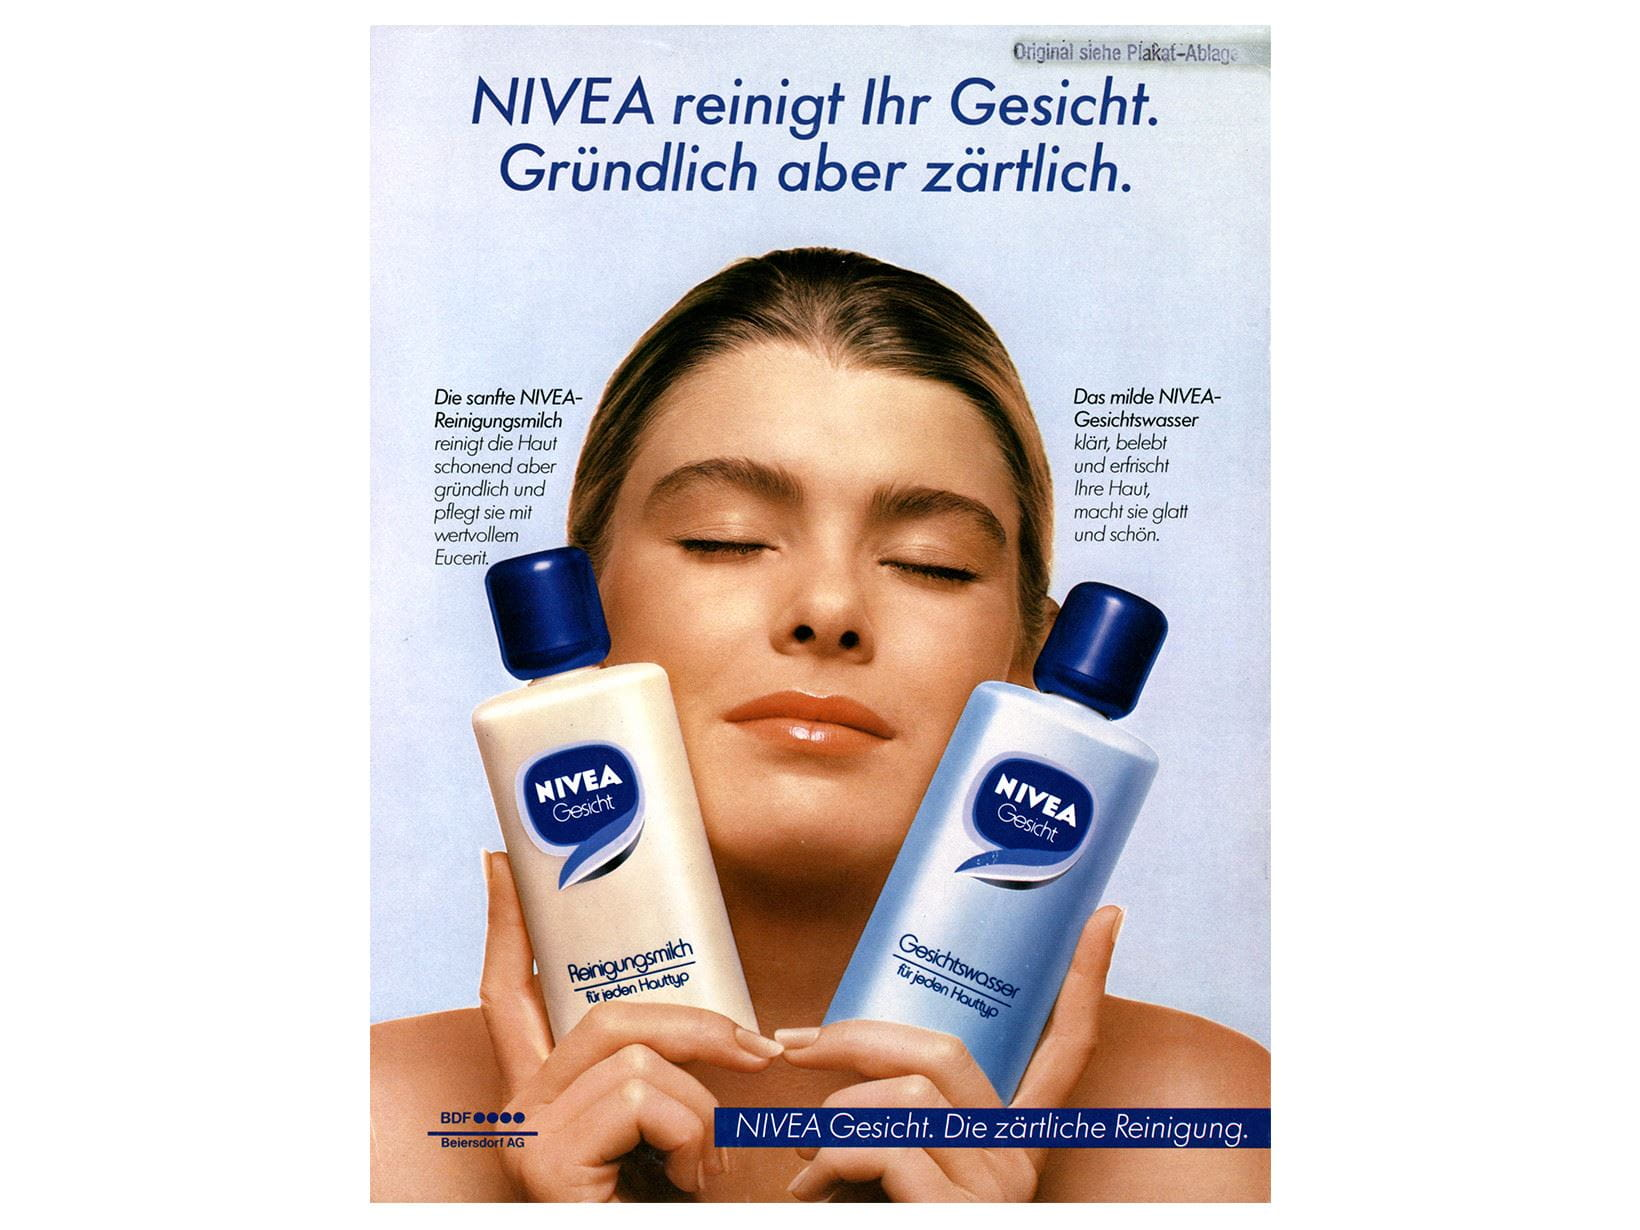 NIVEA advertisement Face 1982